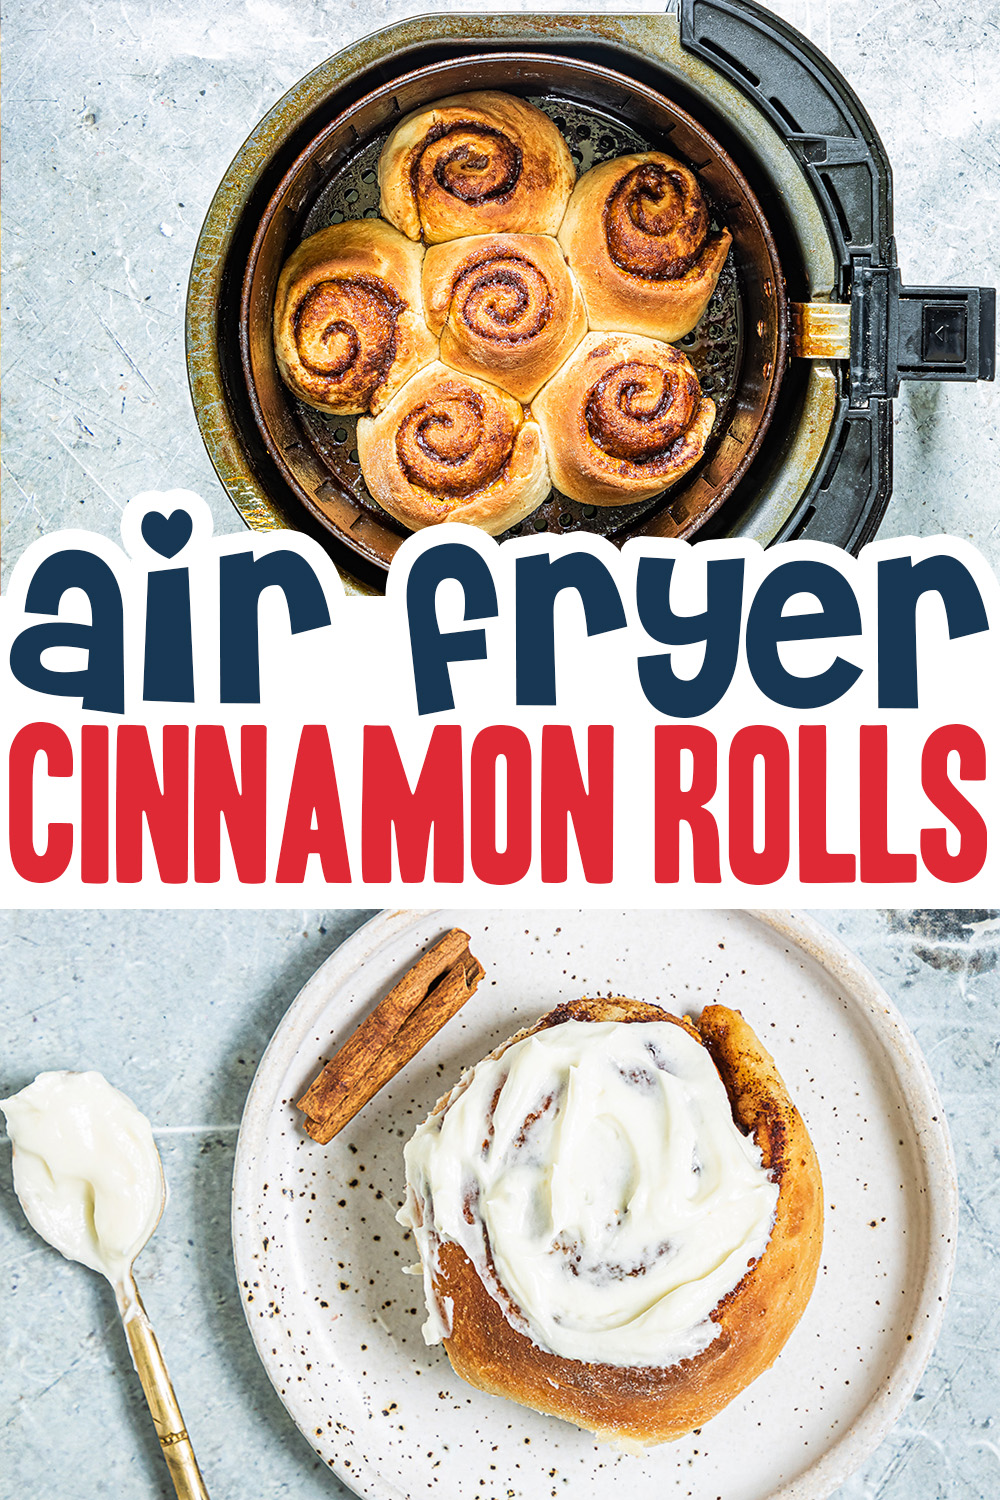 Try this air fryer cinnamon roll recipe for a perfectly cooked cinnamon roll!